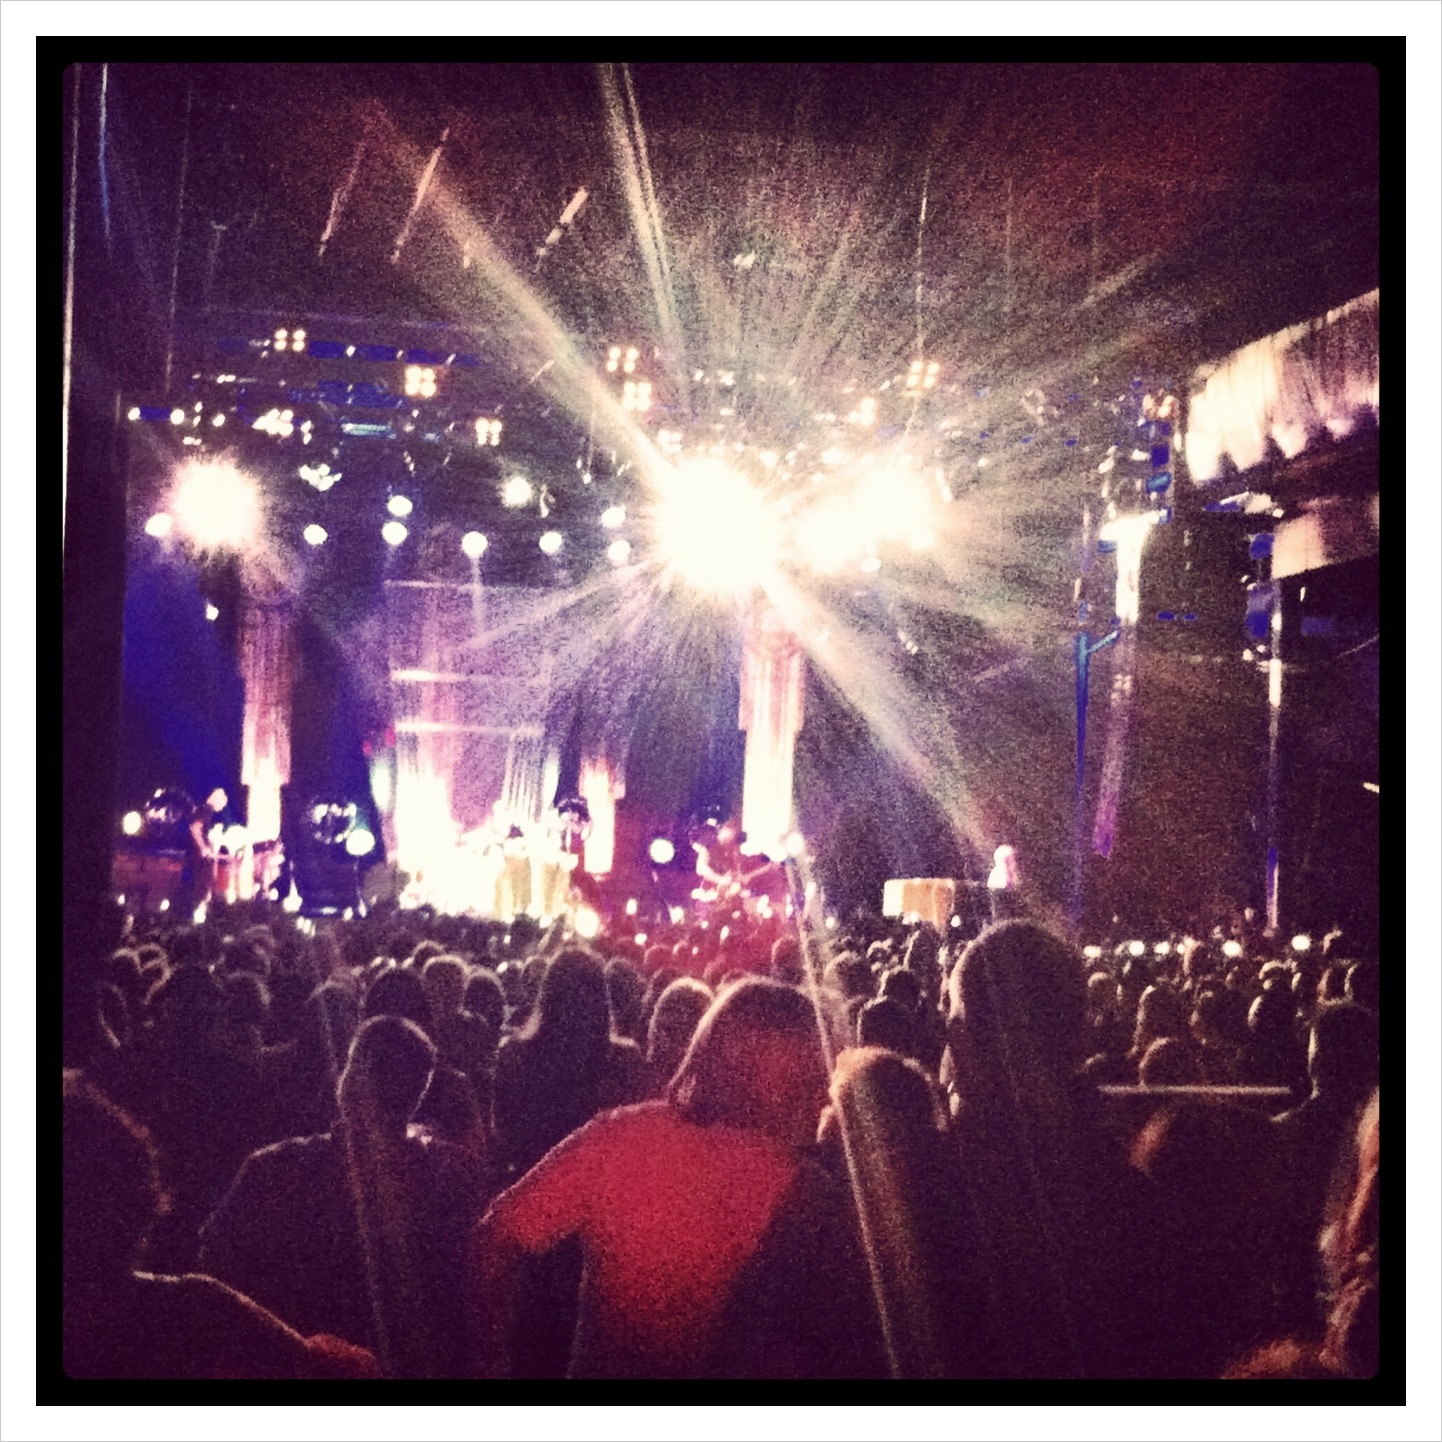 The Palladium Ballroom in Dallas, Texas Florence and the Machine 2012 show